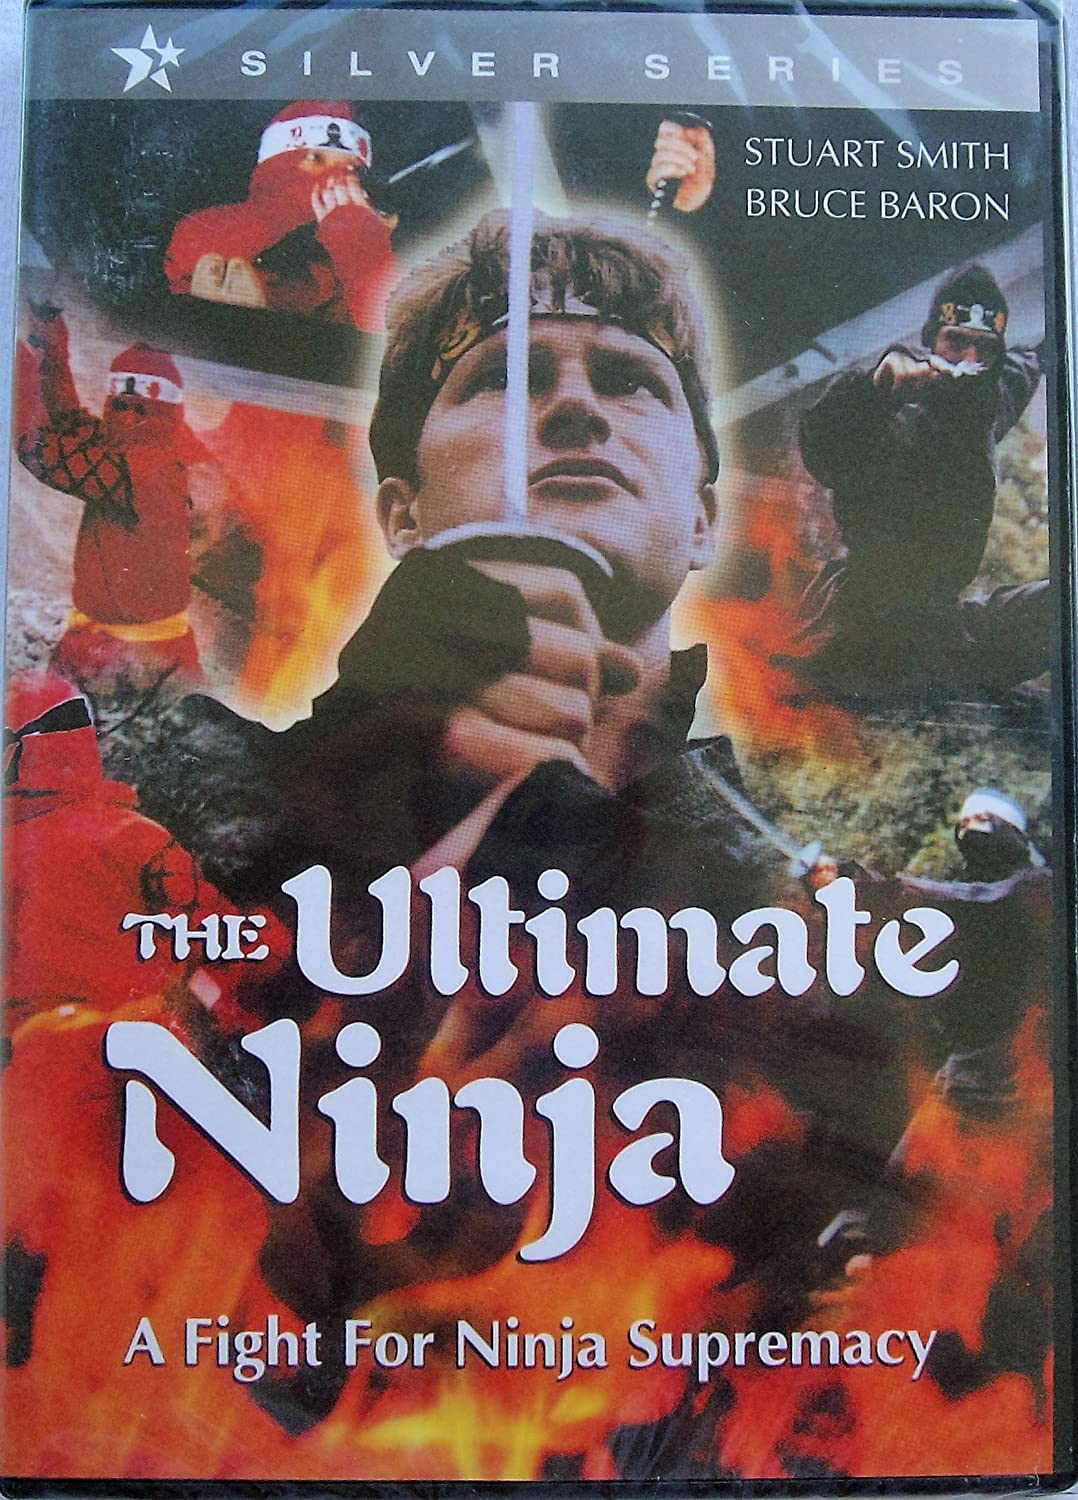 Amazon.com: Ultimate Ninja: Bruce Baron, Sorapong Chatri ...